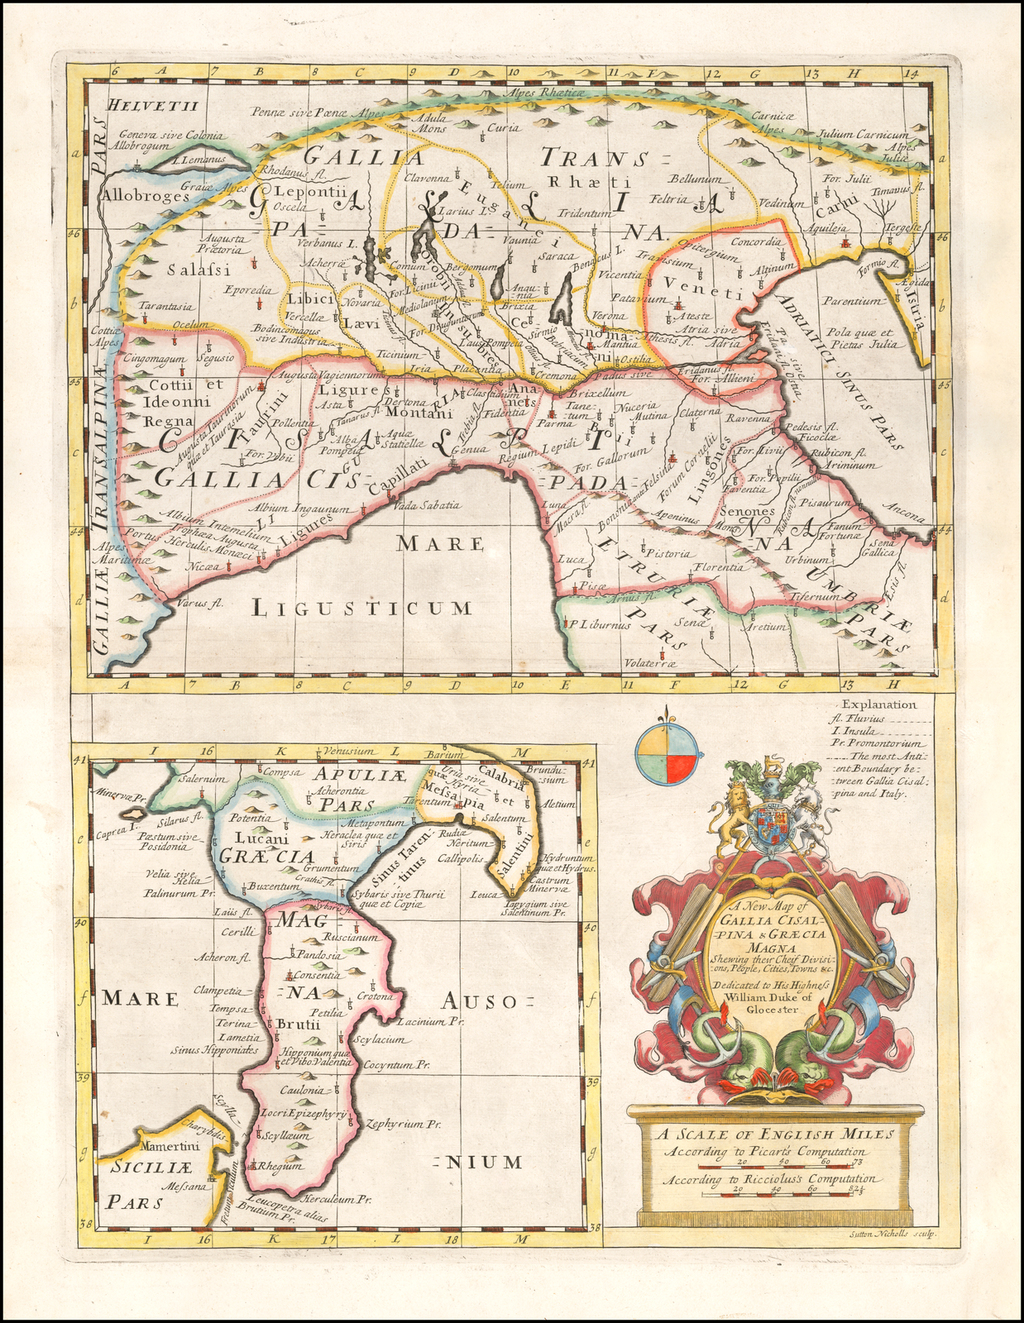 A New Map of Gallia Cisalpina & Graecia Magna. Shewing their Chief Divisions, People, Cities, Towns &c. Dedicated to his Highness William Duke of Glocester By Edward Wells